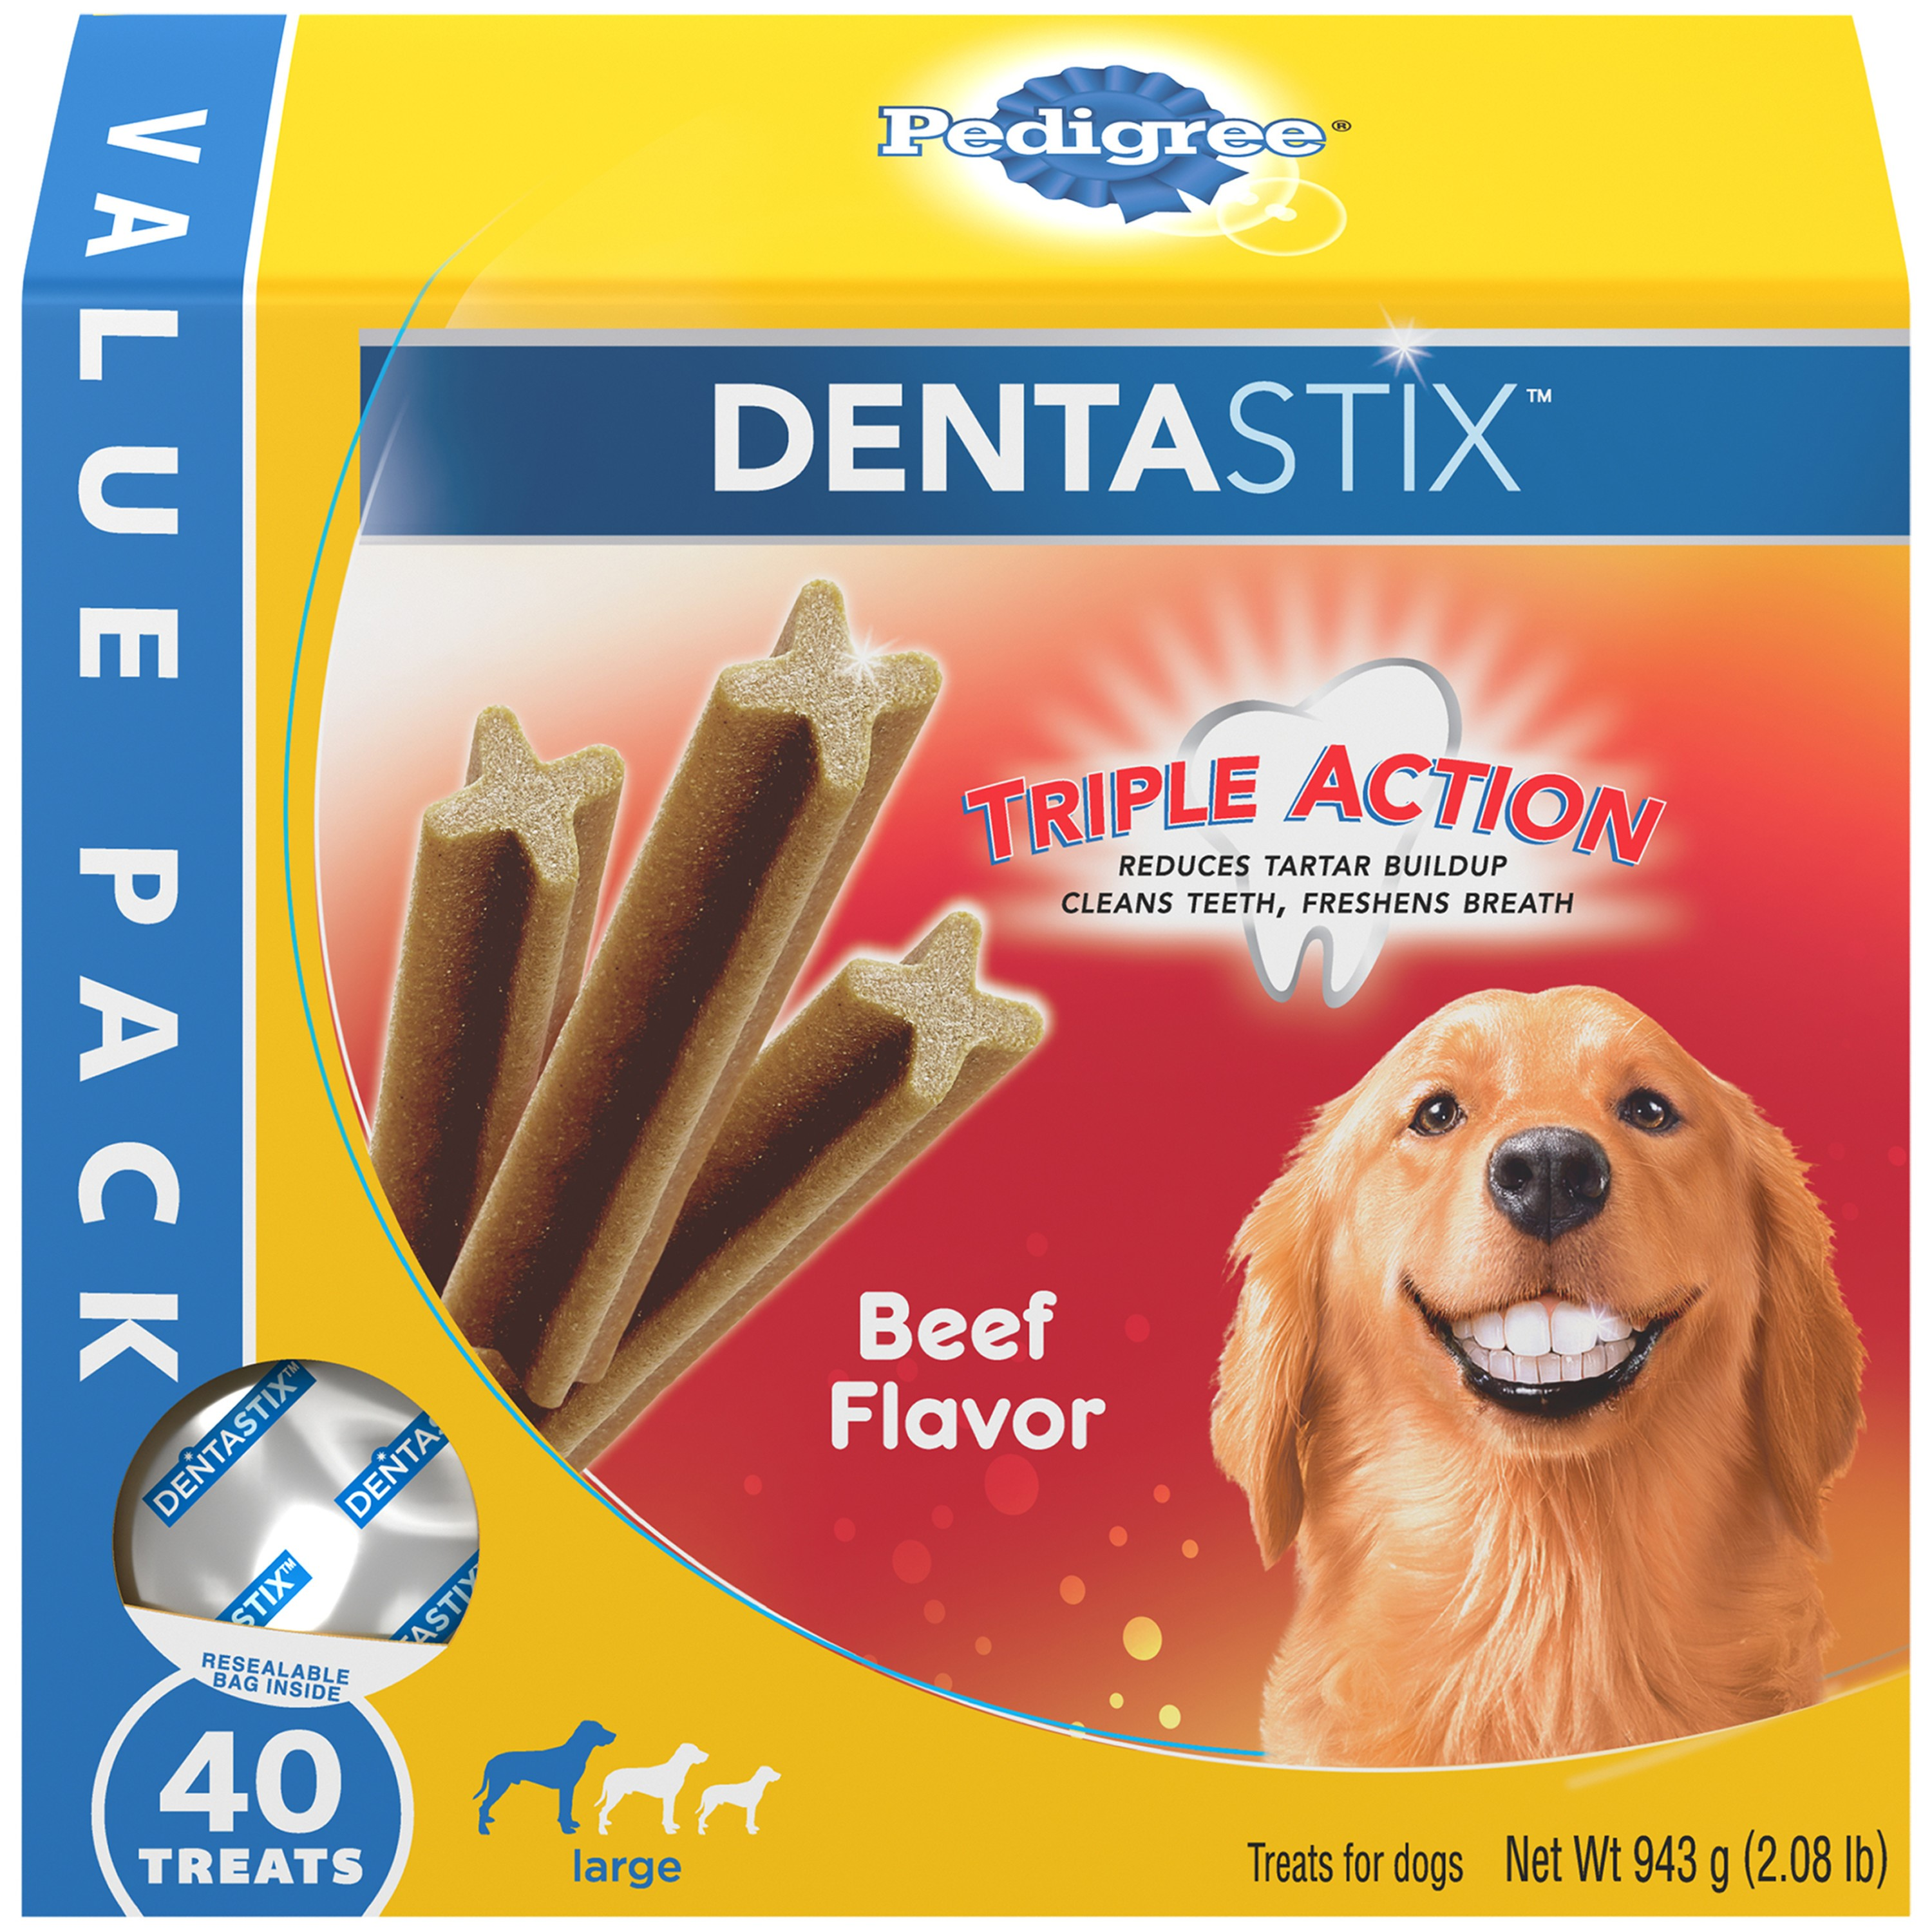 Pedigree Dentastix Beef Flavor Large Dog Treats 2.08 lb Value Pack, 40 Treats by Mars Petcare